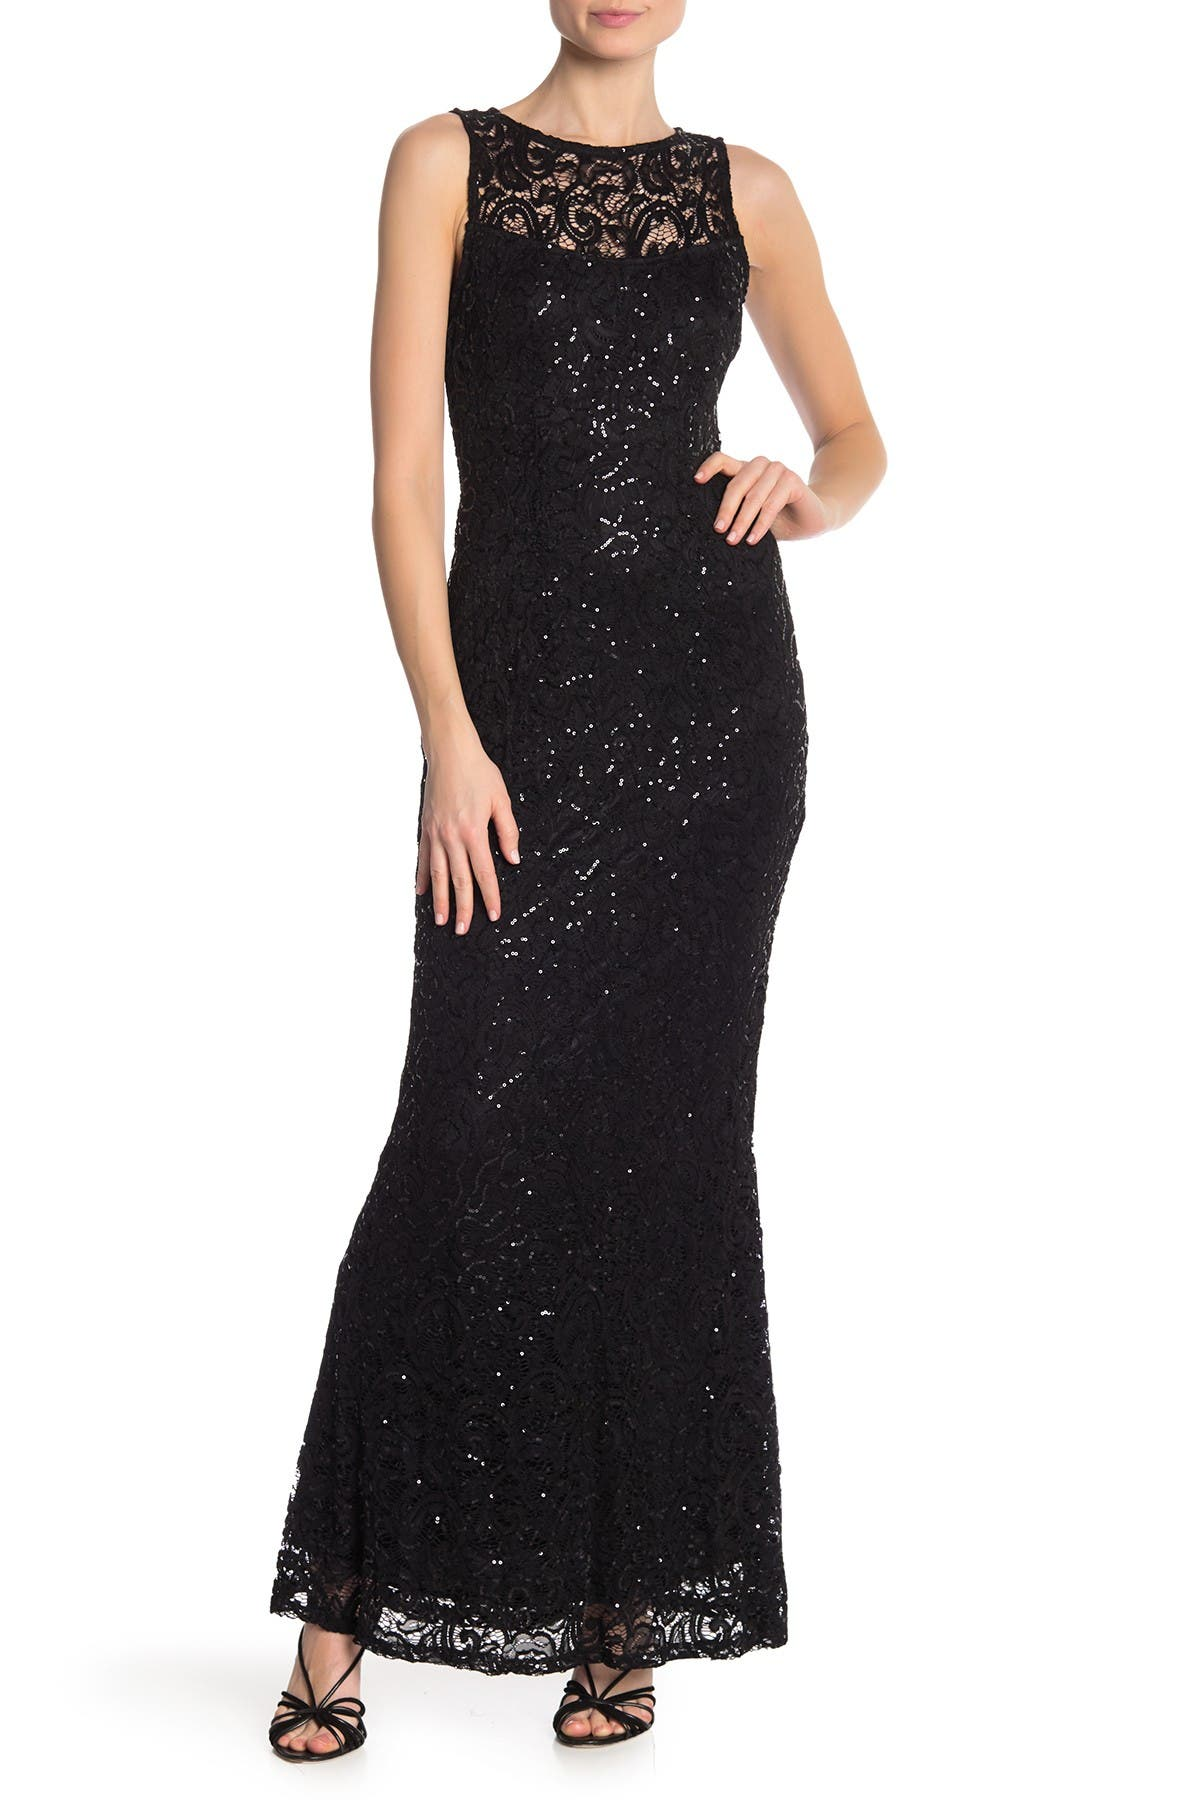 Image of Marina Sequin Lace Sleeveless Maxi Dress